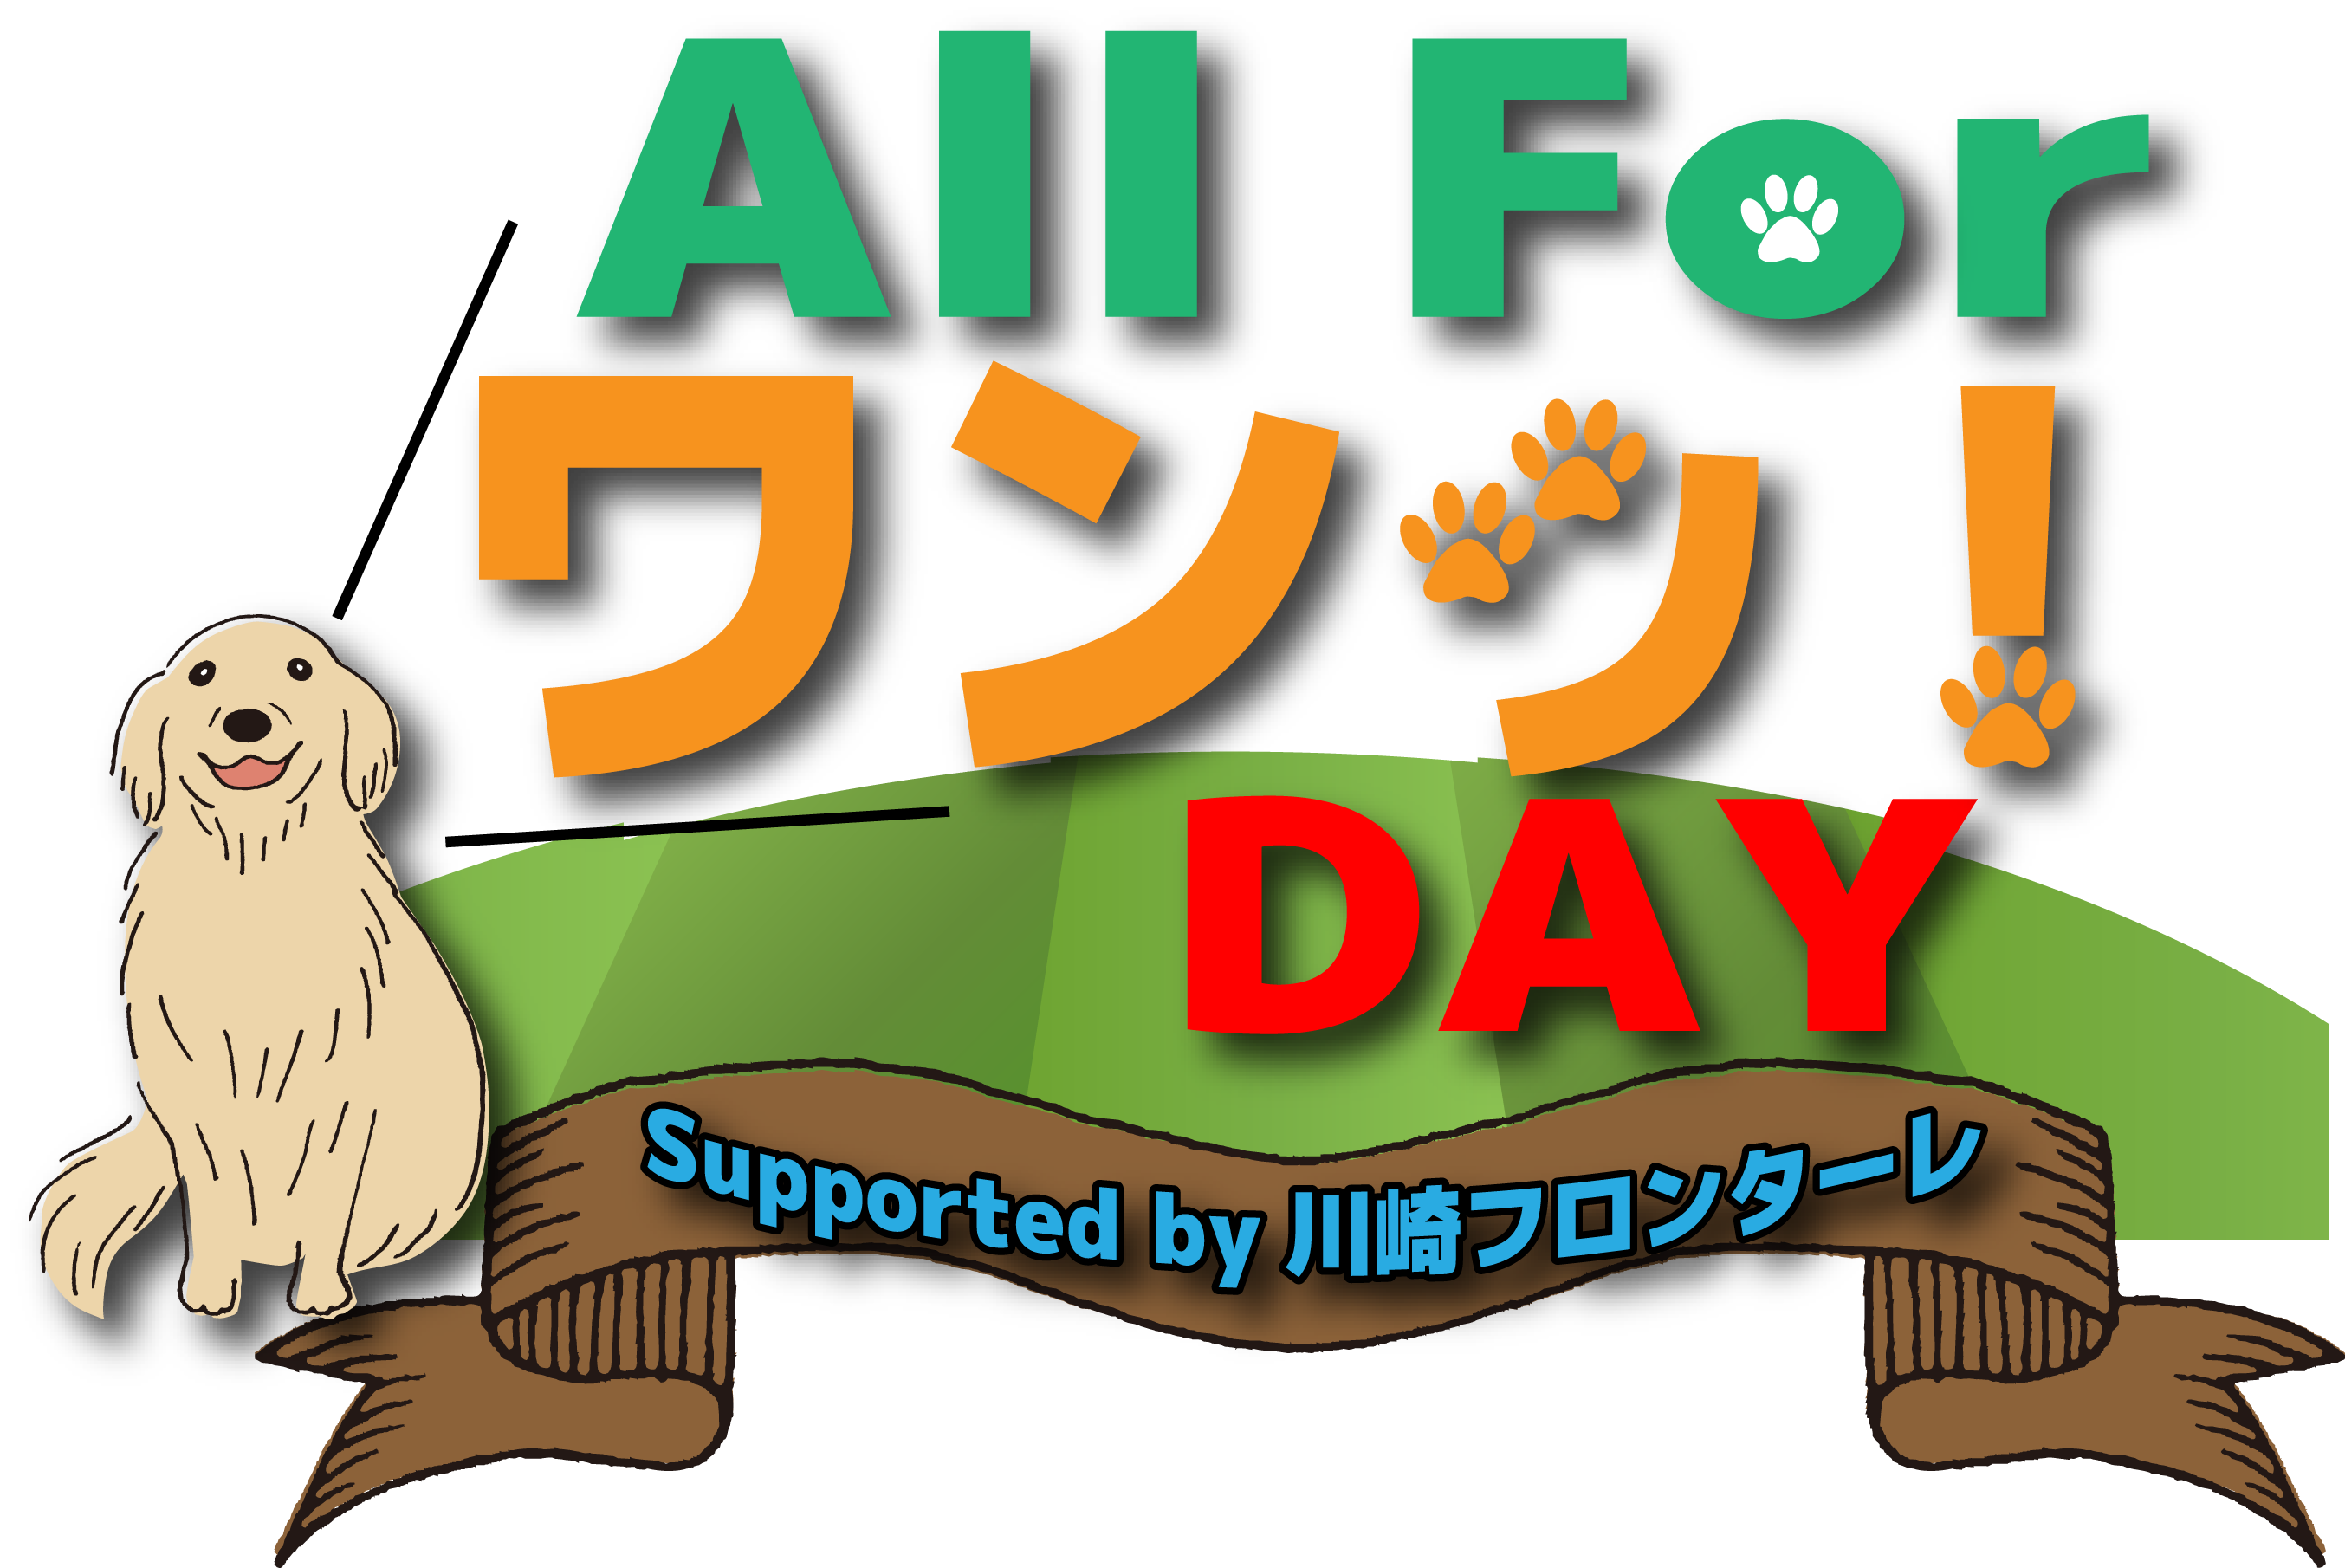 ALL FOR ワンッ!! DAY 2019 SUPPORTED BY 川崎フロンターレ